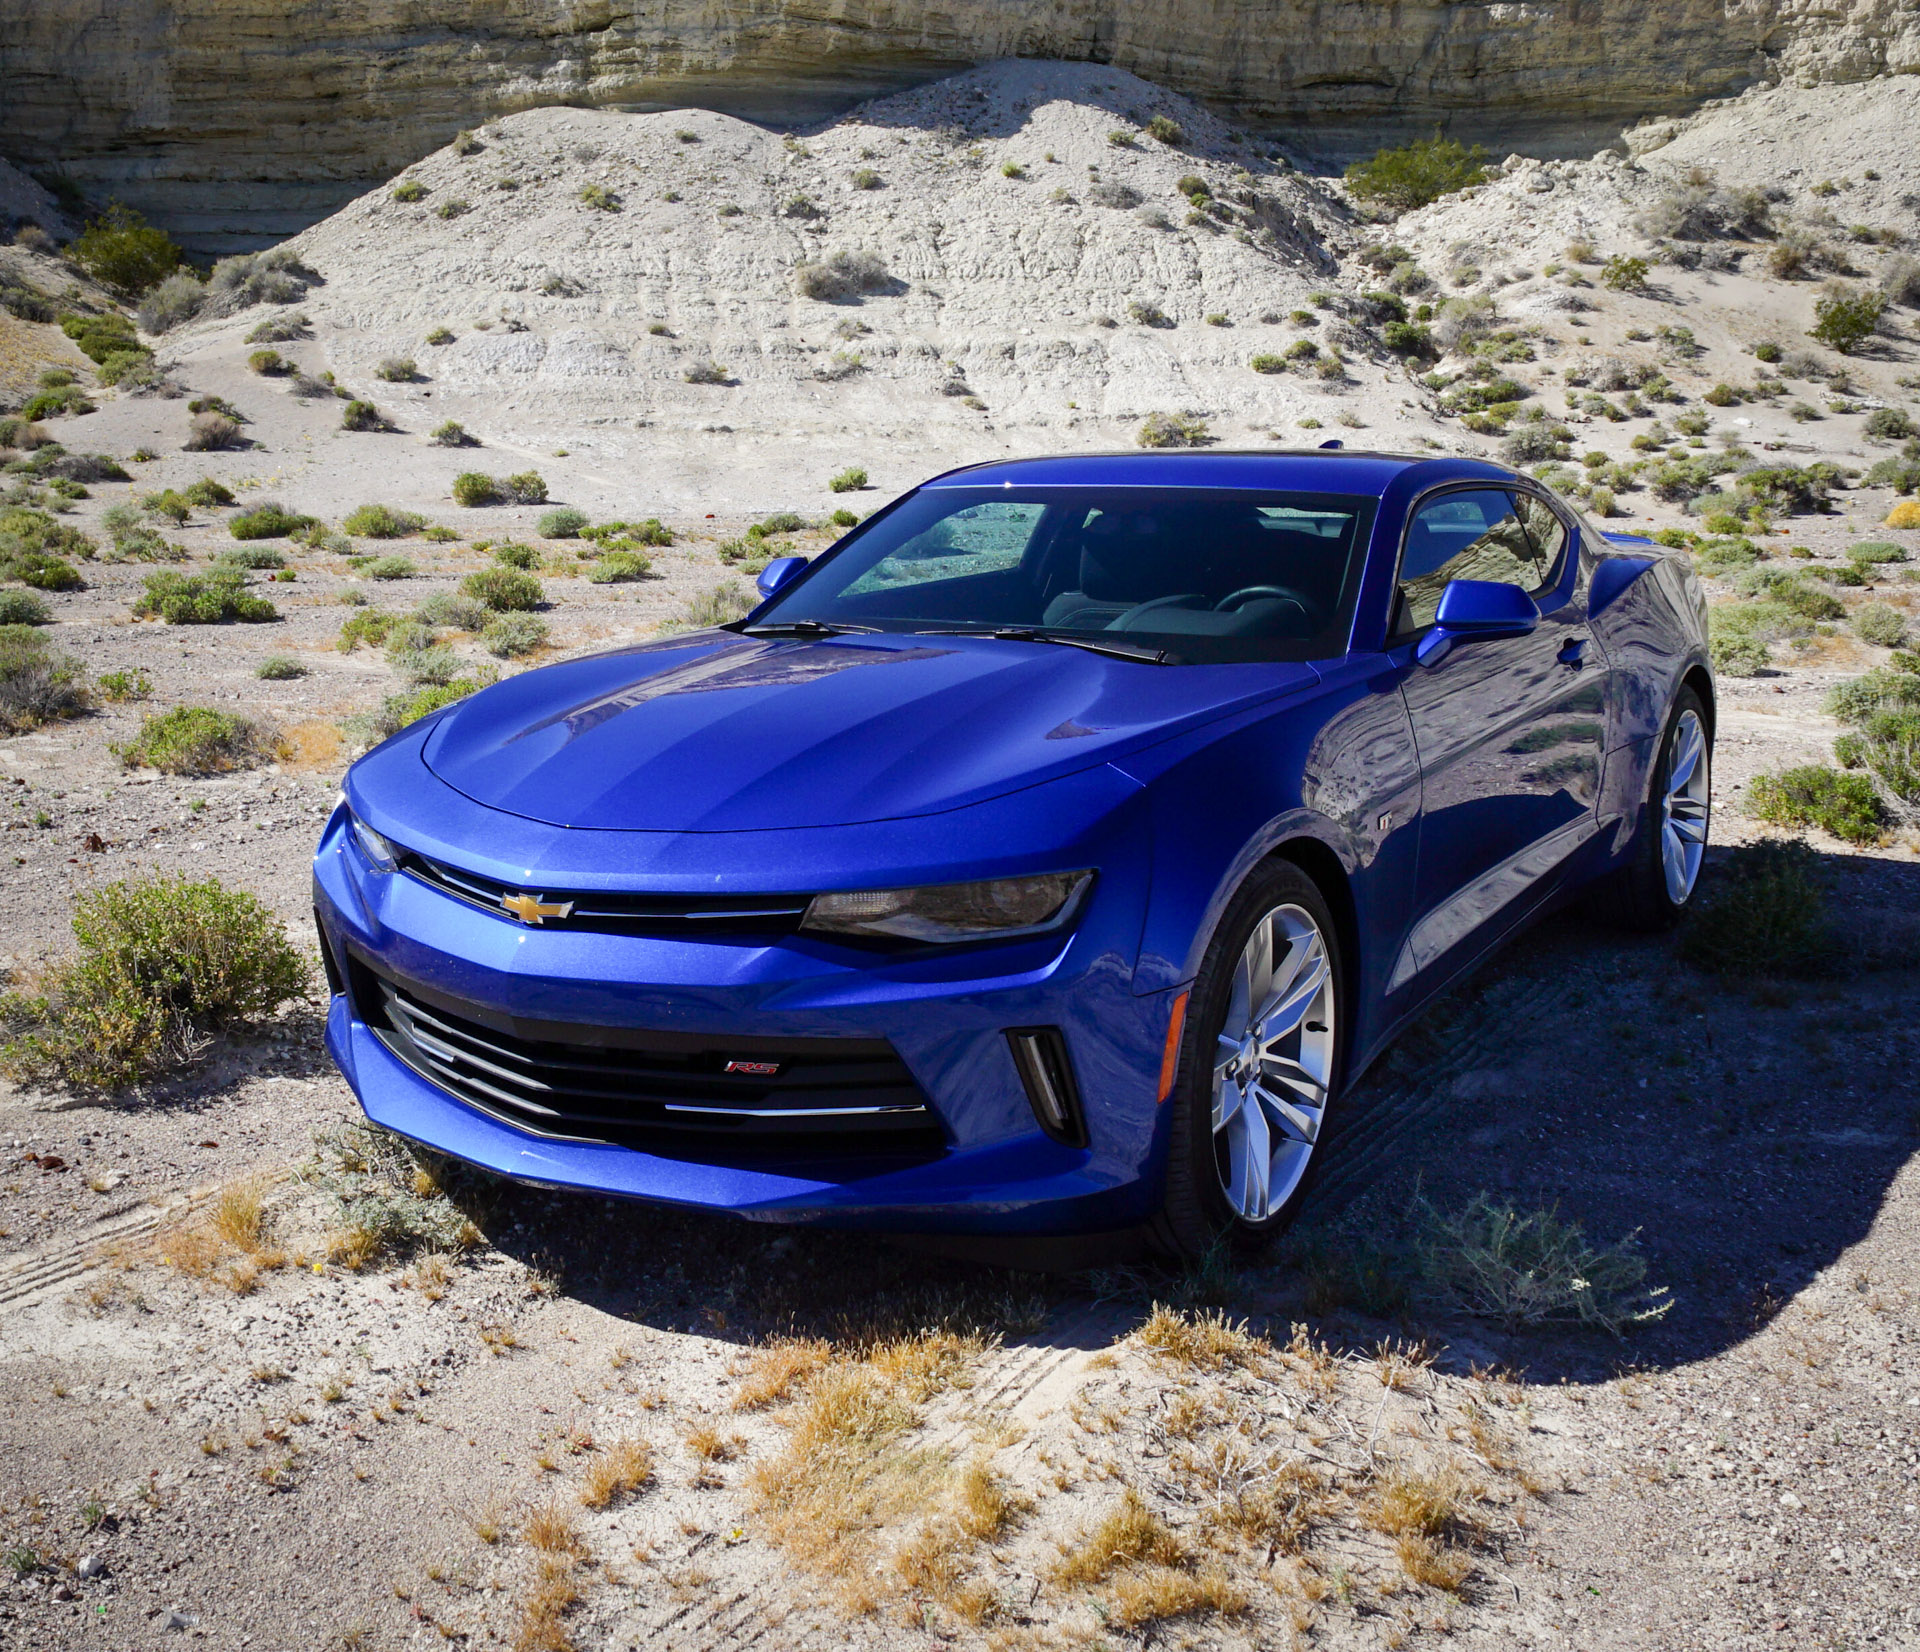 first drive review 2016 chevrolet camaro 2 0l turbo 95 octane. Black Bedroom Furniture Sets. Home Design Ideas